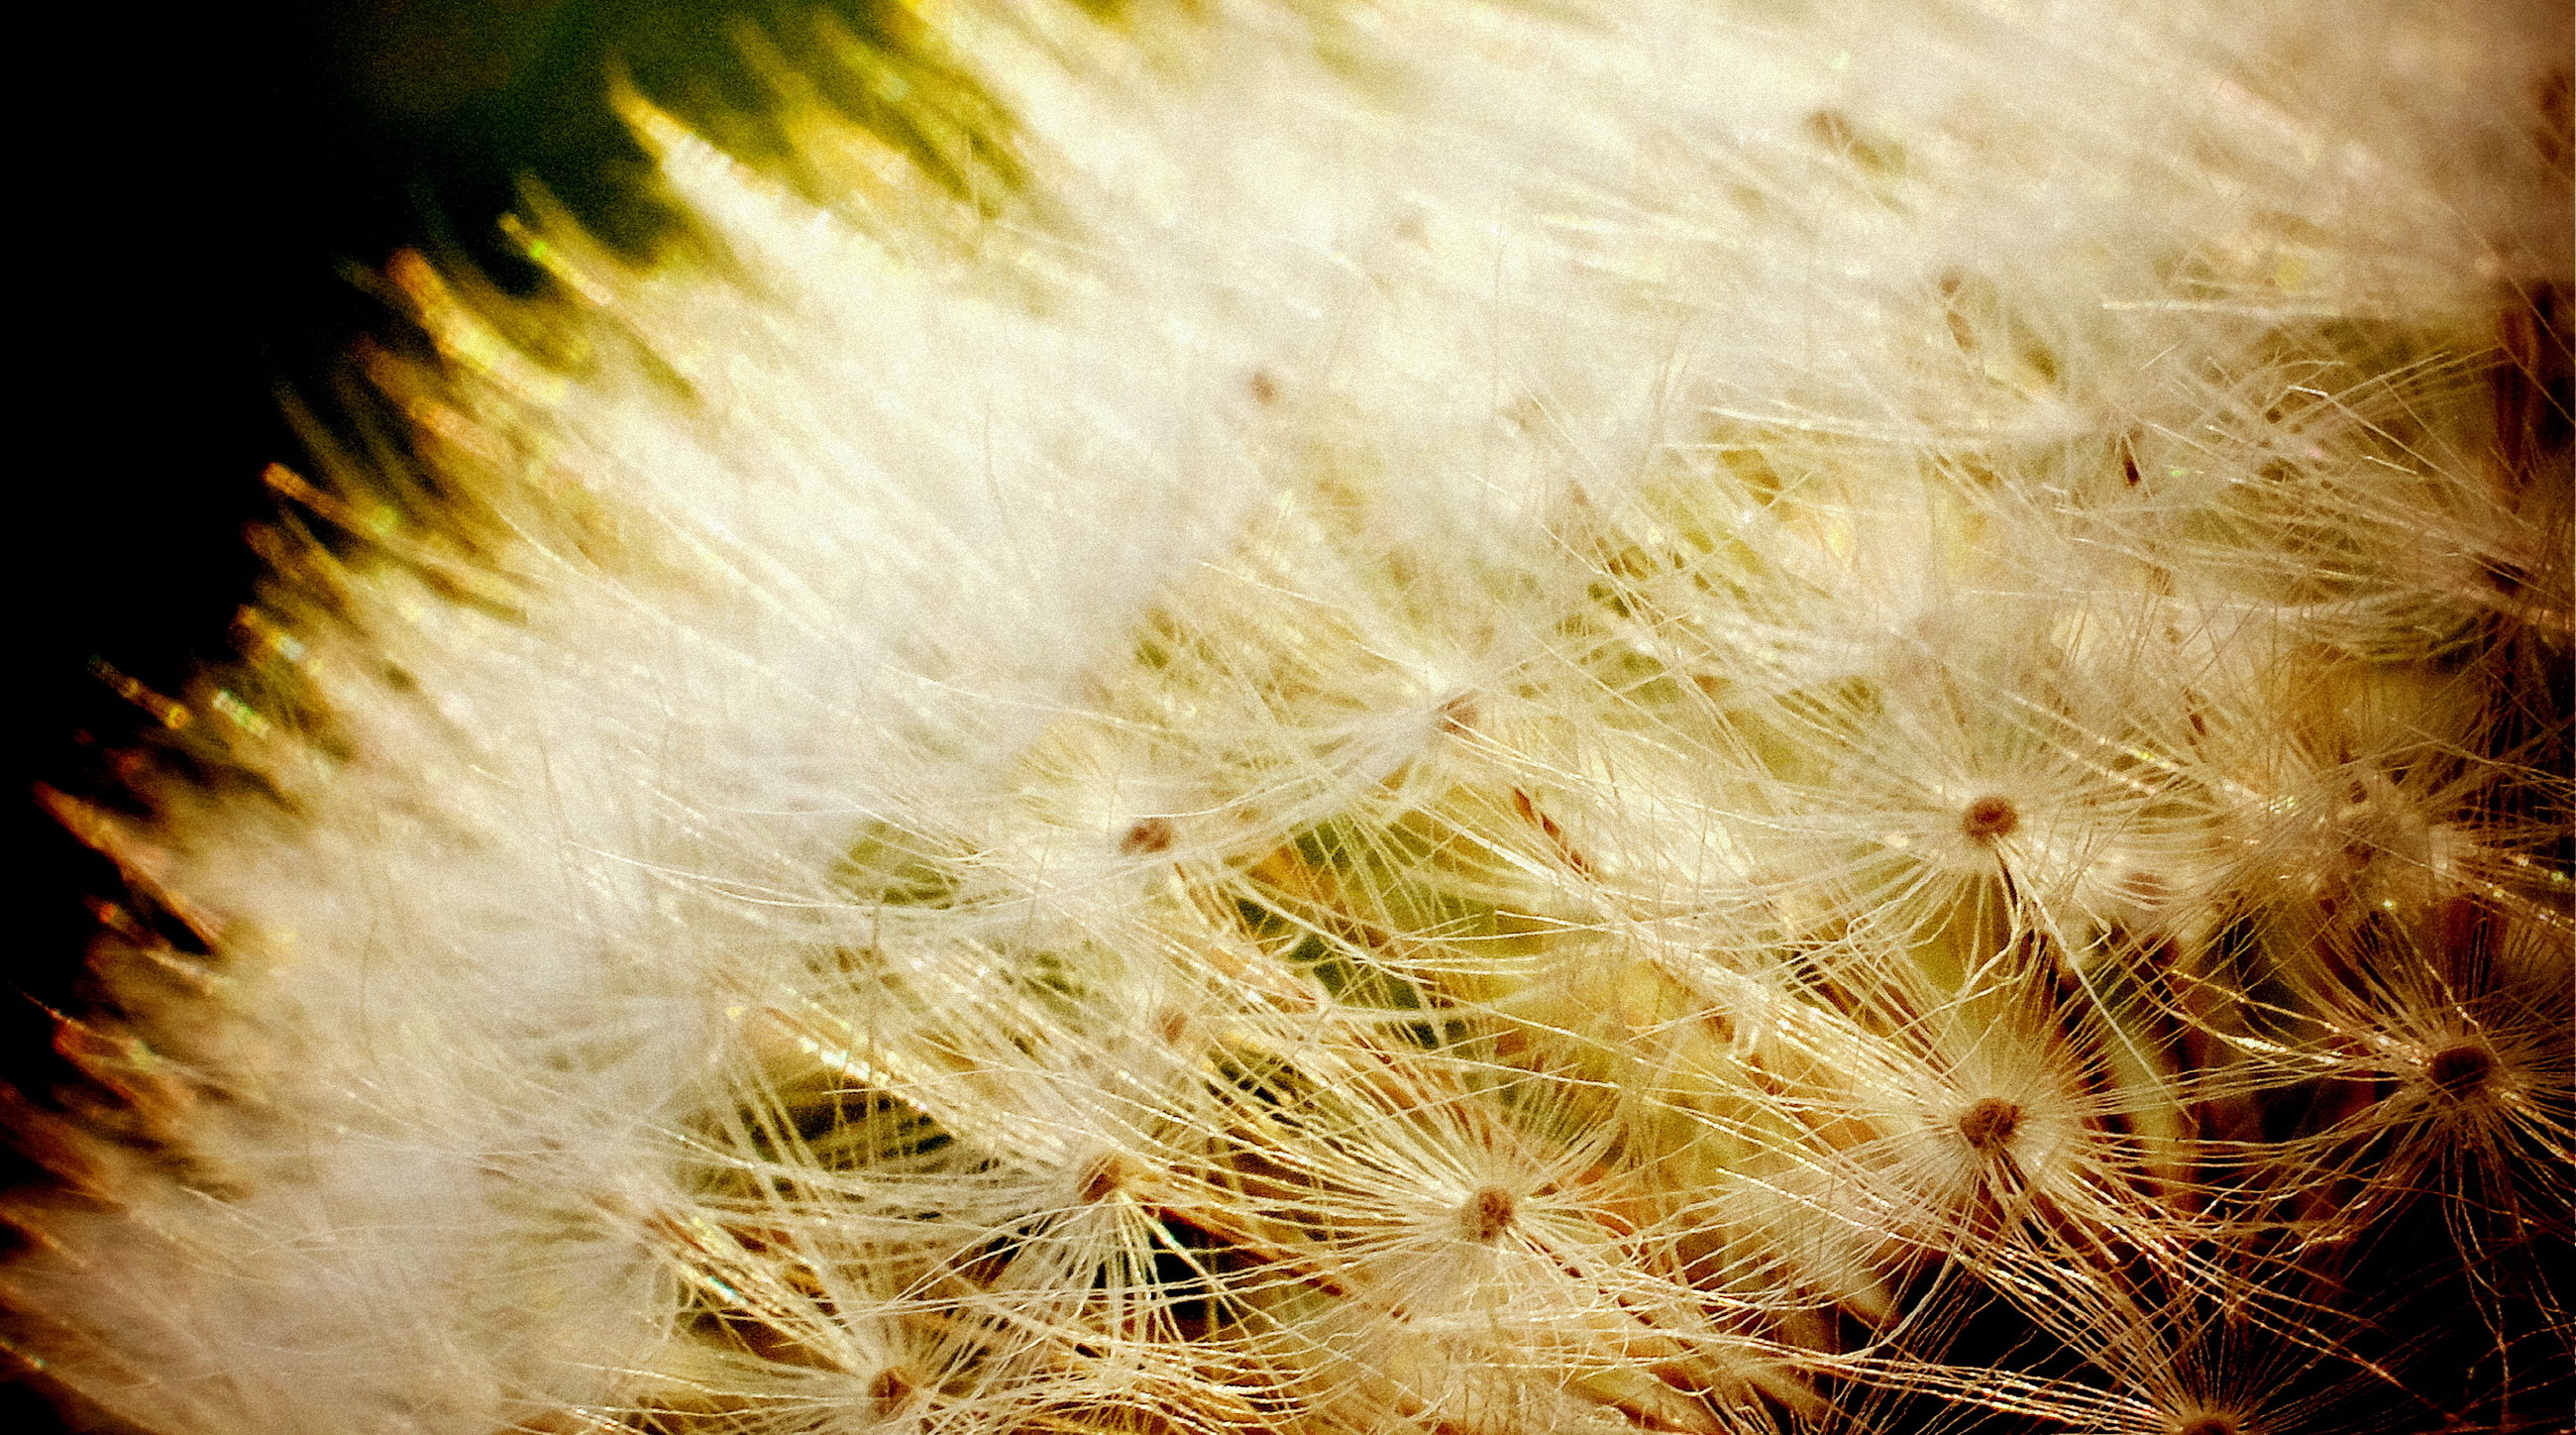 close-up, fragility, softness, white color, vulnerability, plant, dandelion, flowering plant, flower, freshness, nature, growth, no people, beauty in nature, backgrounds, seed, macro, selective focus, extreme close-up, dandelion seed, soft focus, black background